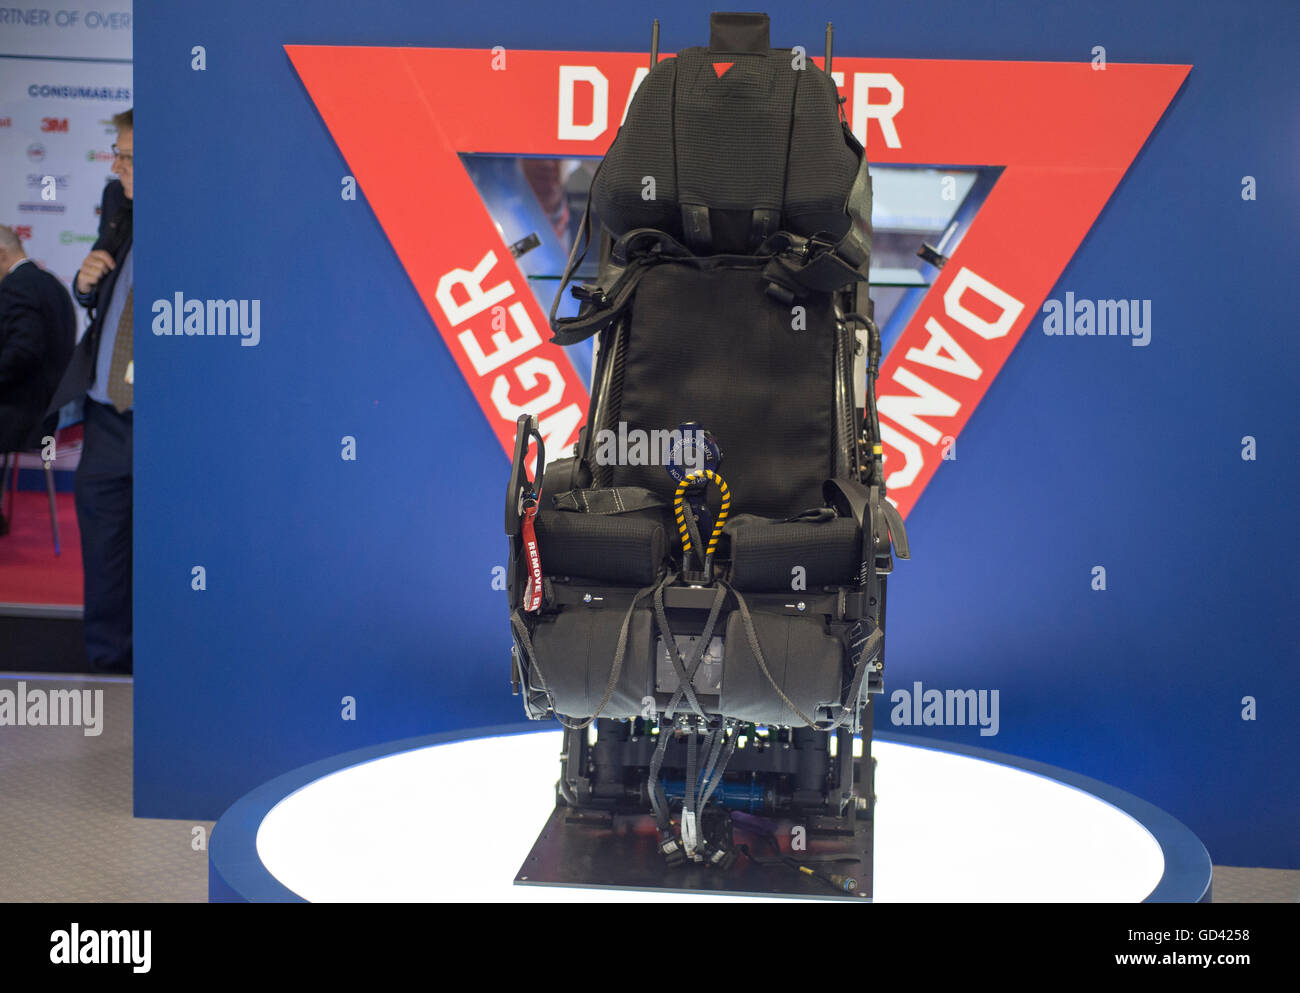 Farnborough, Hampshire UK. 12th July 2016. Martin Baker ejector seat for the Lockheed Martin F-35 Joint Strike Fighter. - Stock Image